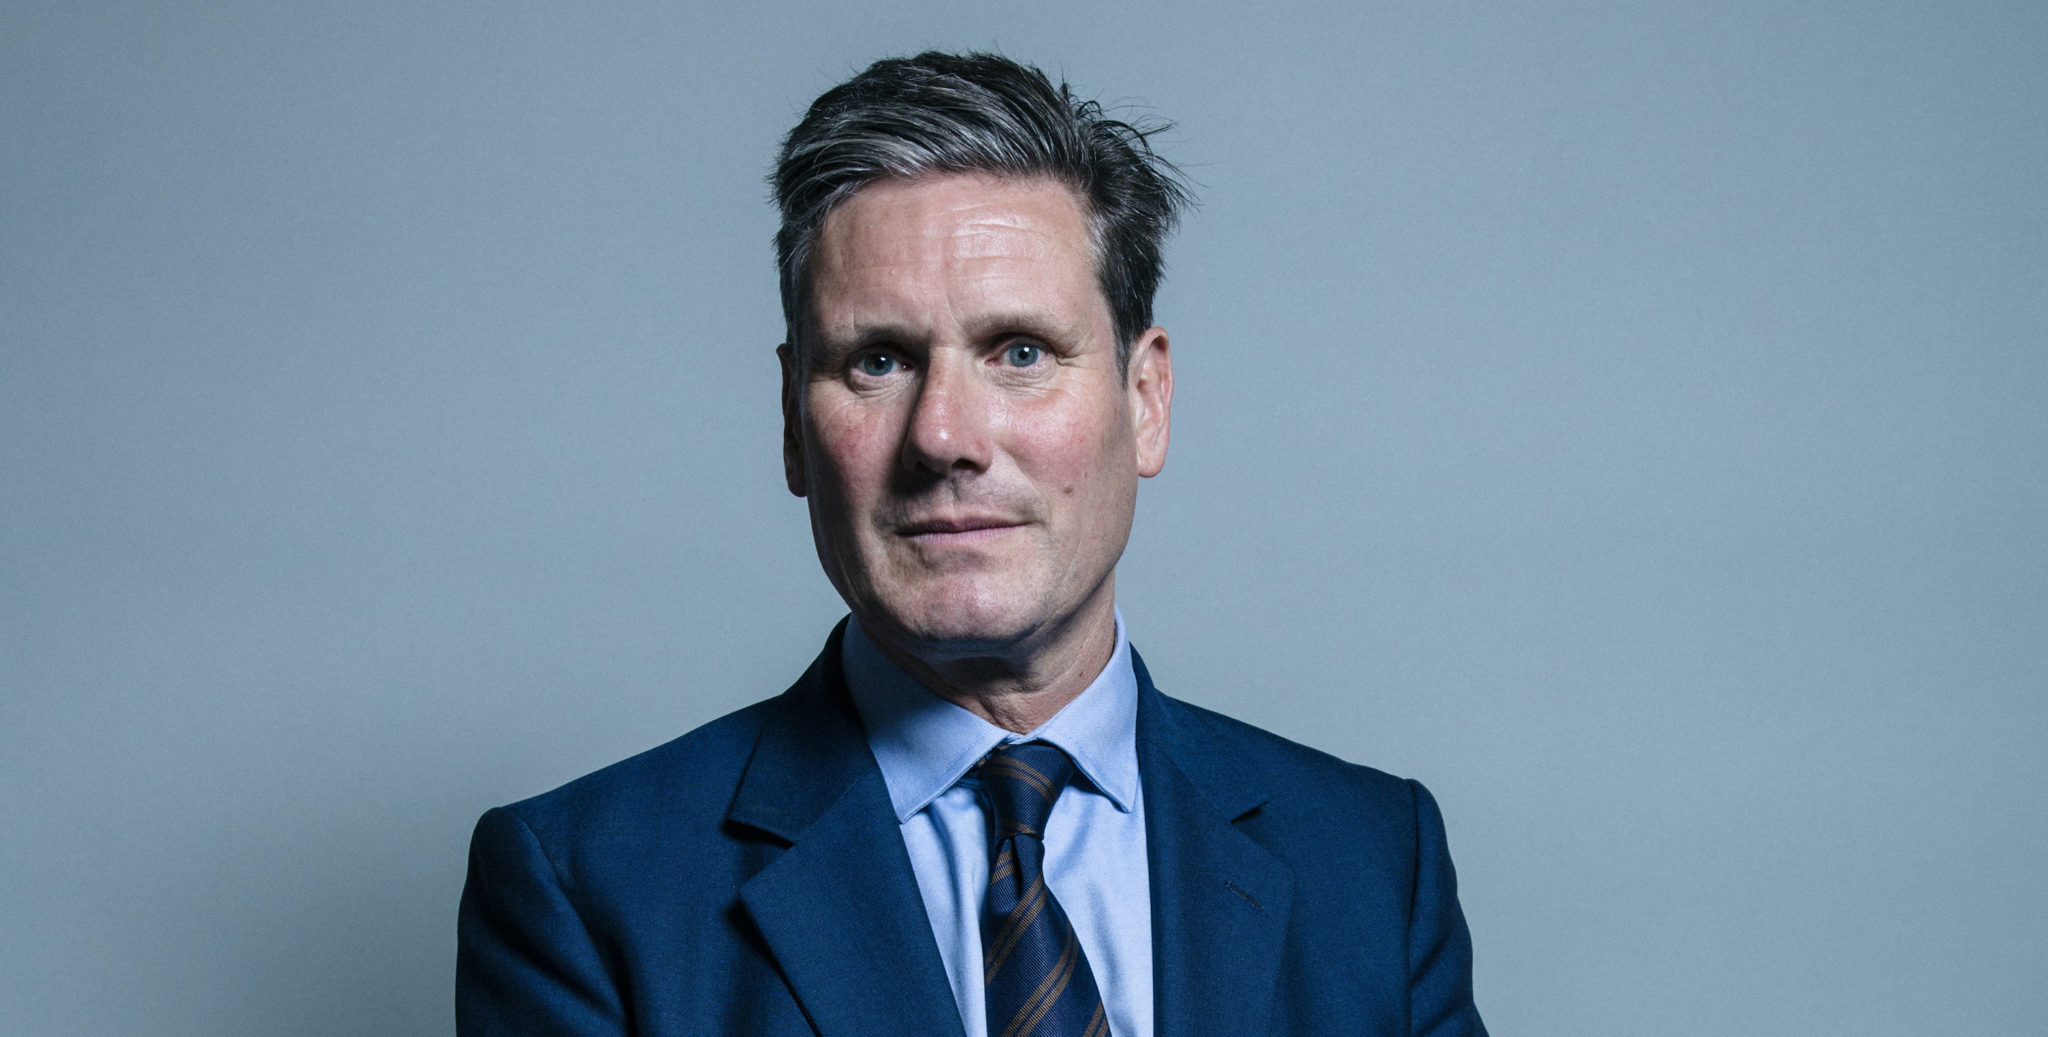 Sir-Keir-Starmer-students-tell-Labour-leader-mental-health-impact-of-lockdown-in-halls